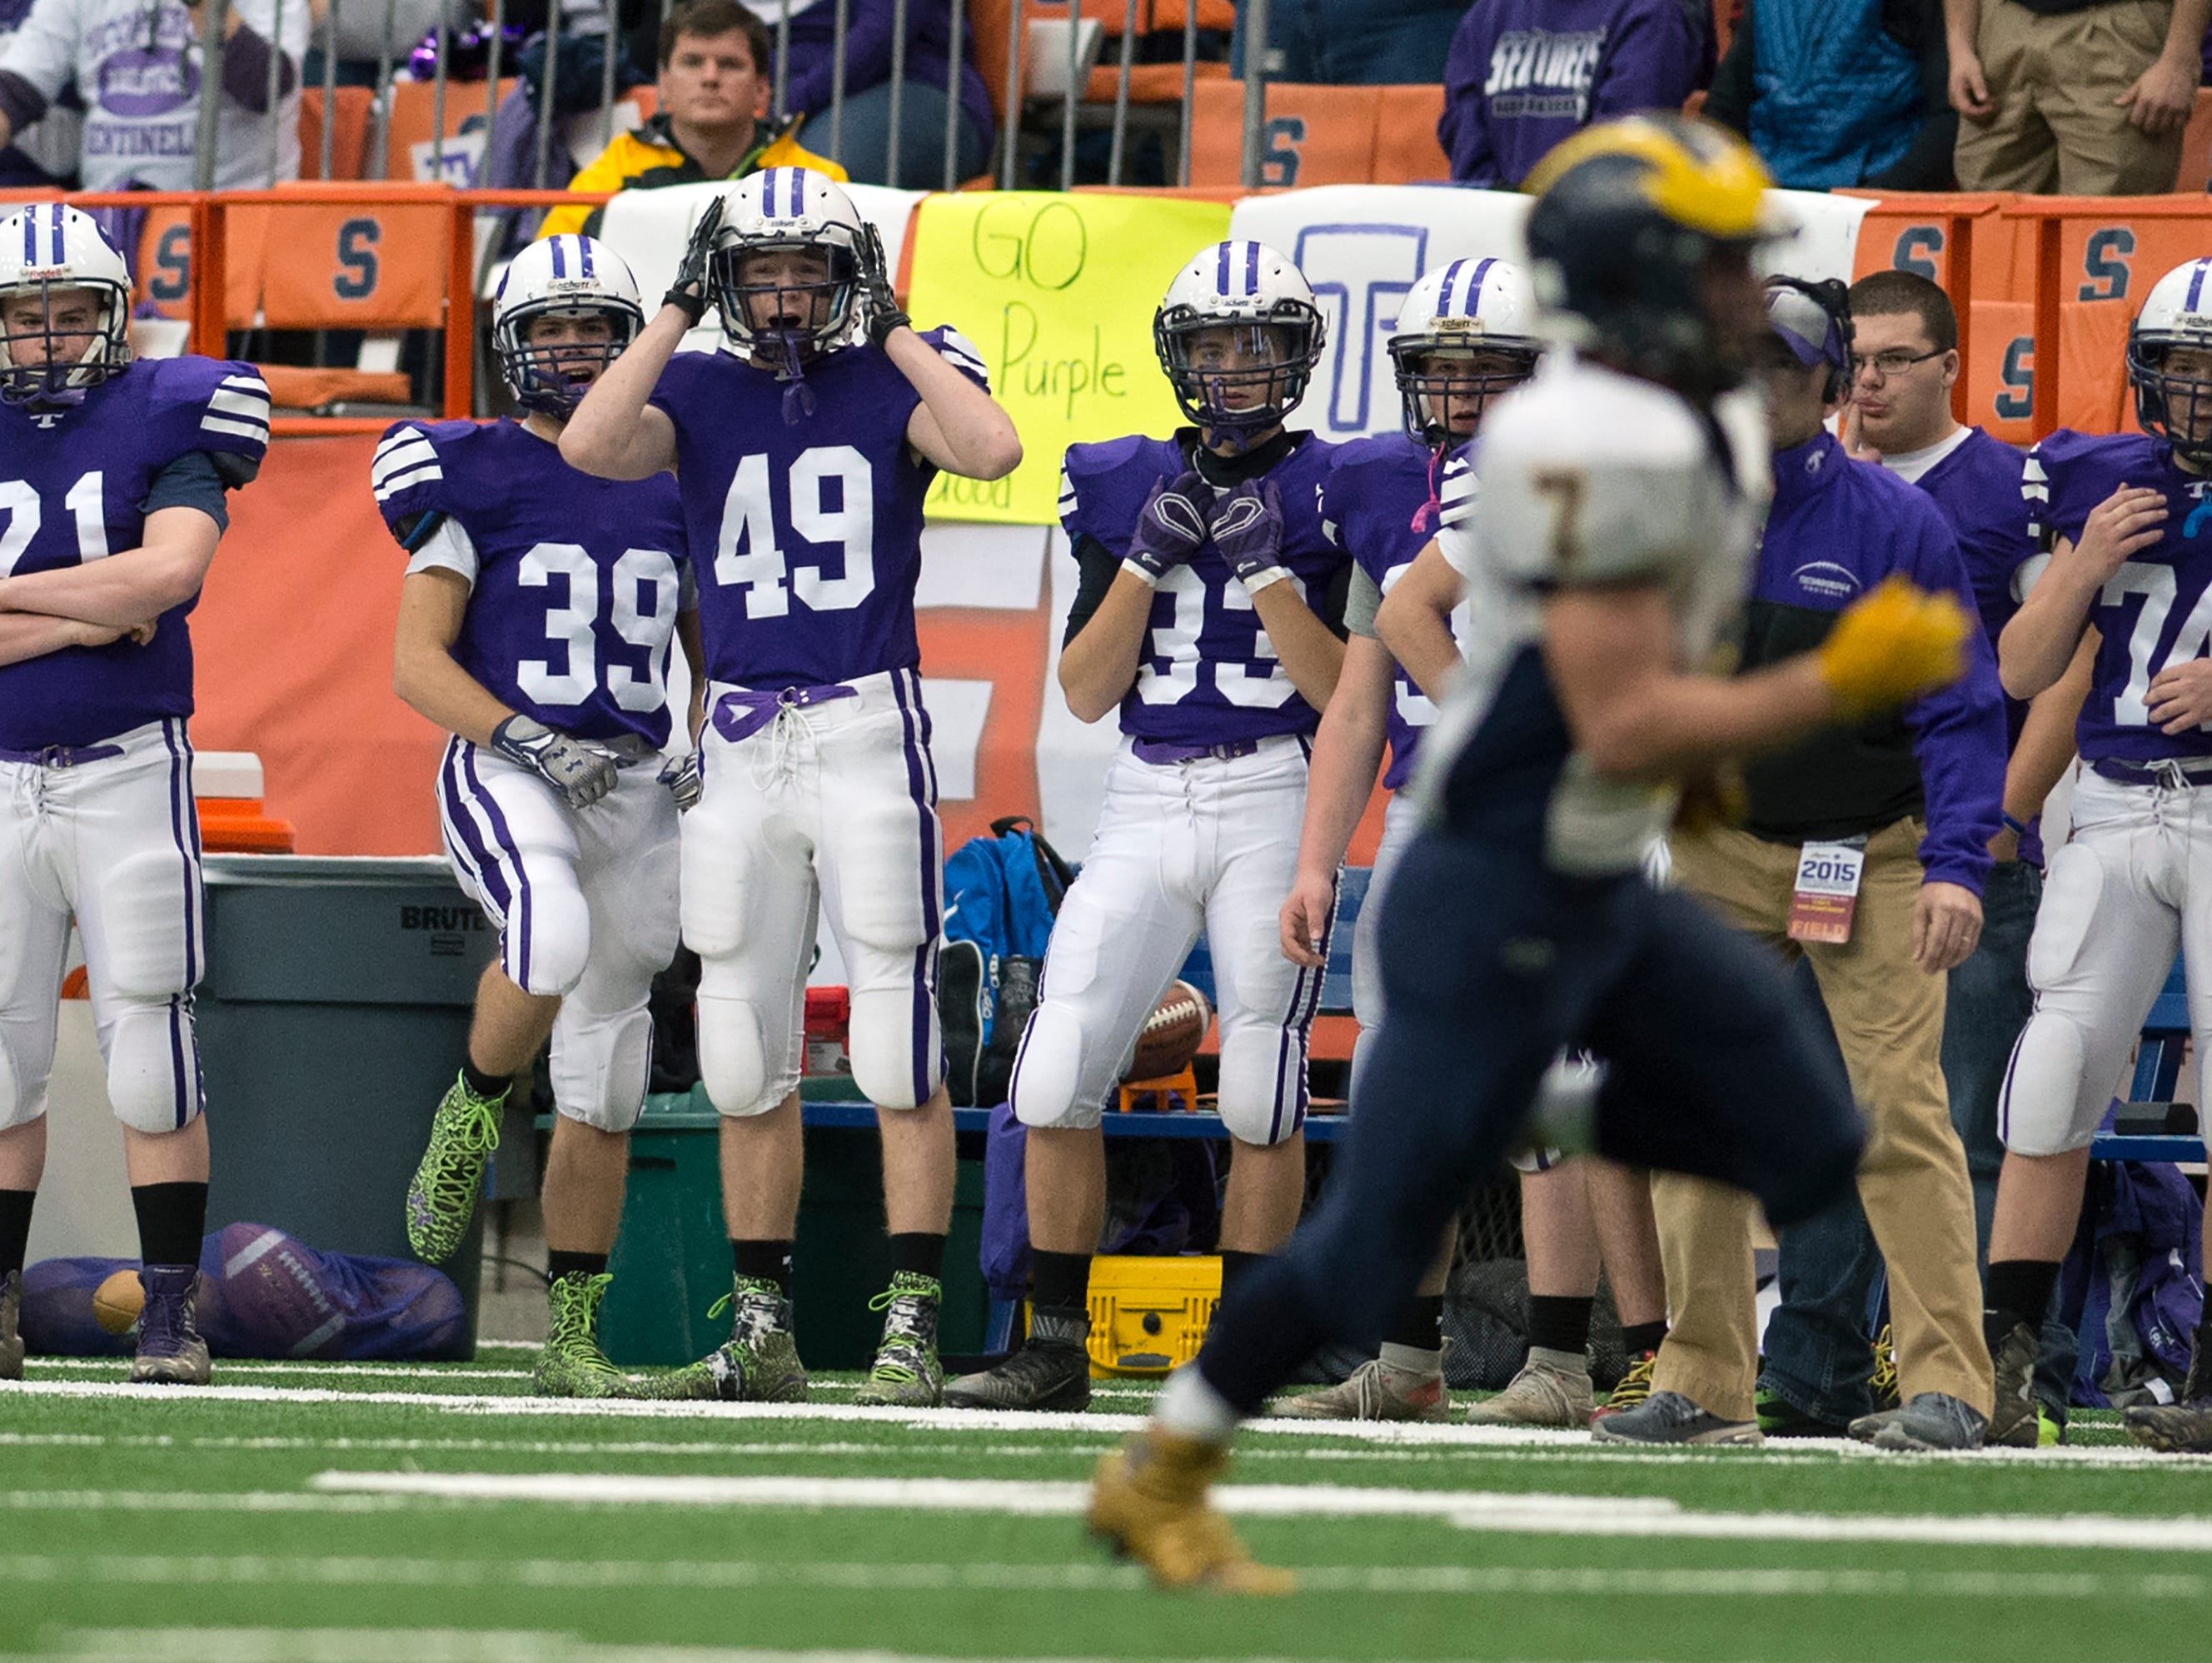 Ticonderoga players watch as Tioga runningback Jesse Manuel scores a touchdown during the first half of the 2015 Class D State Championship in Syracuse on Friday, Nov. 27, 2015.